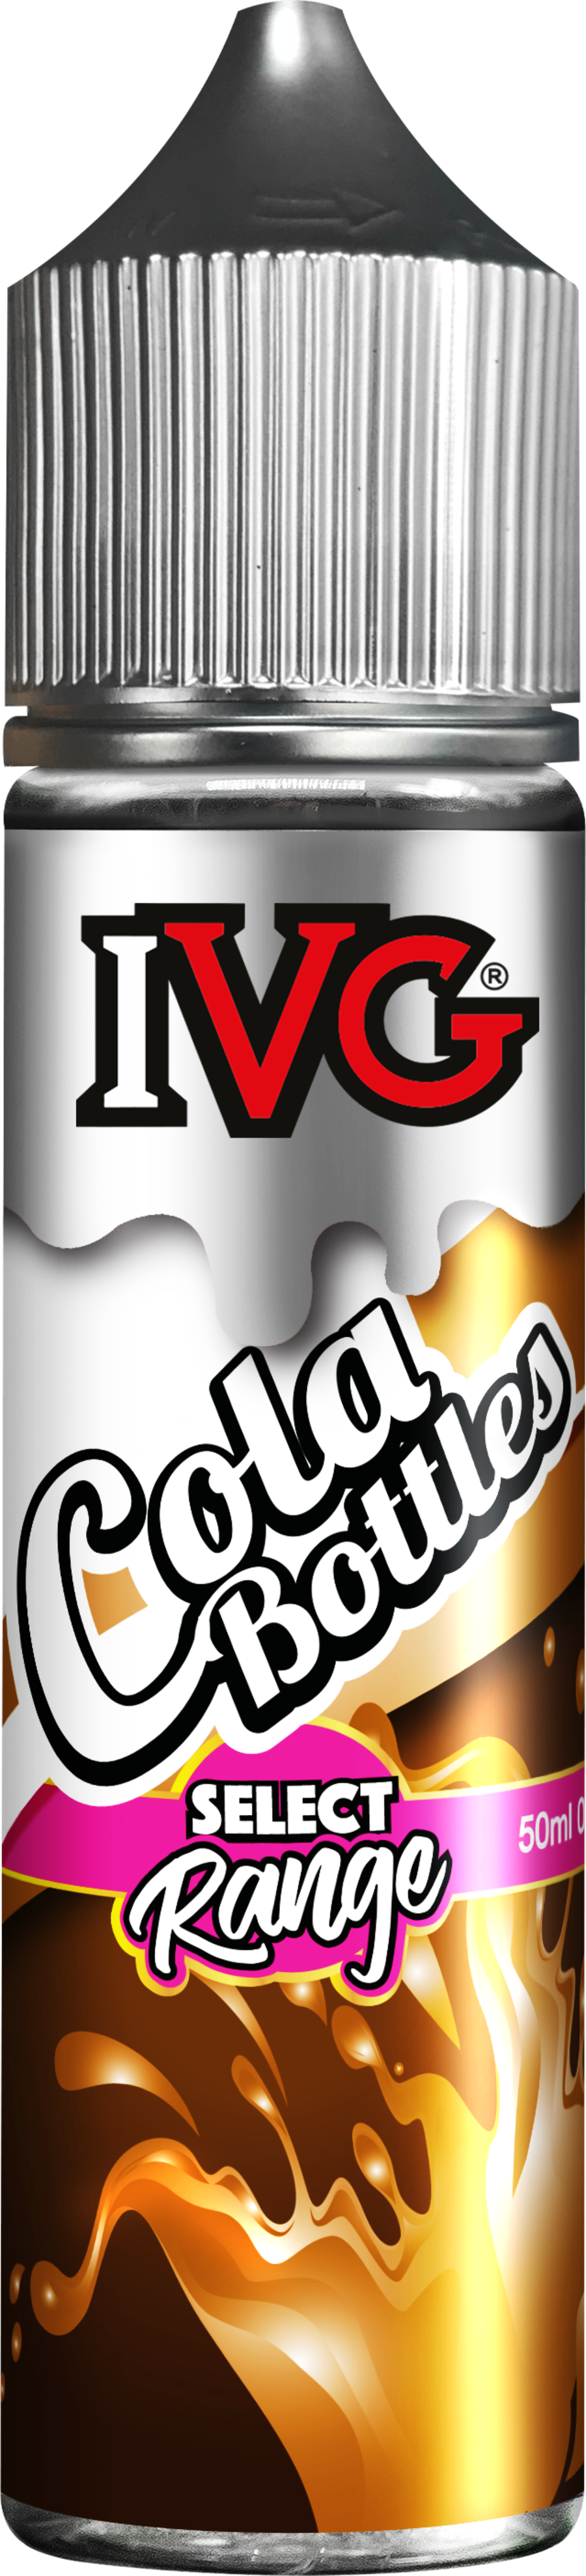 Cola Bottles By I VG SSelect 50ml